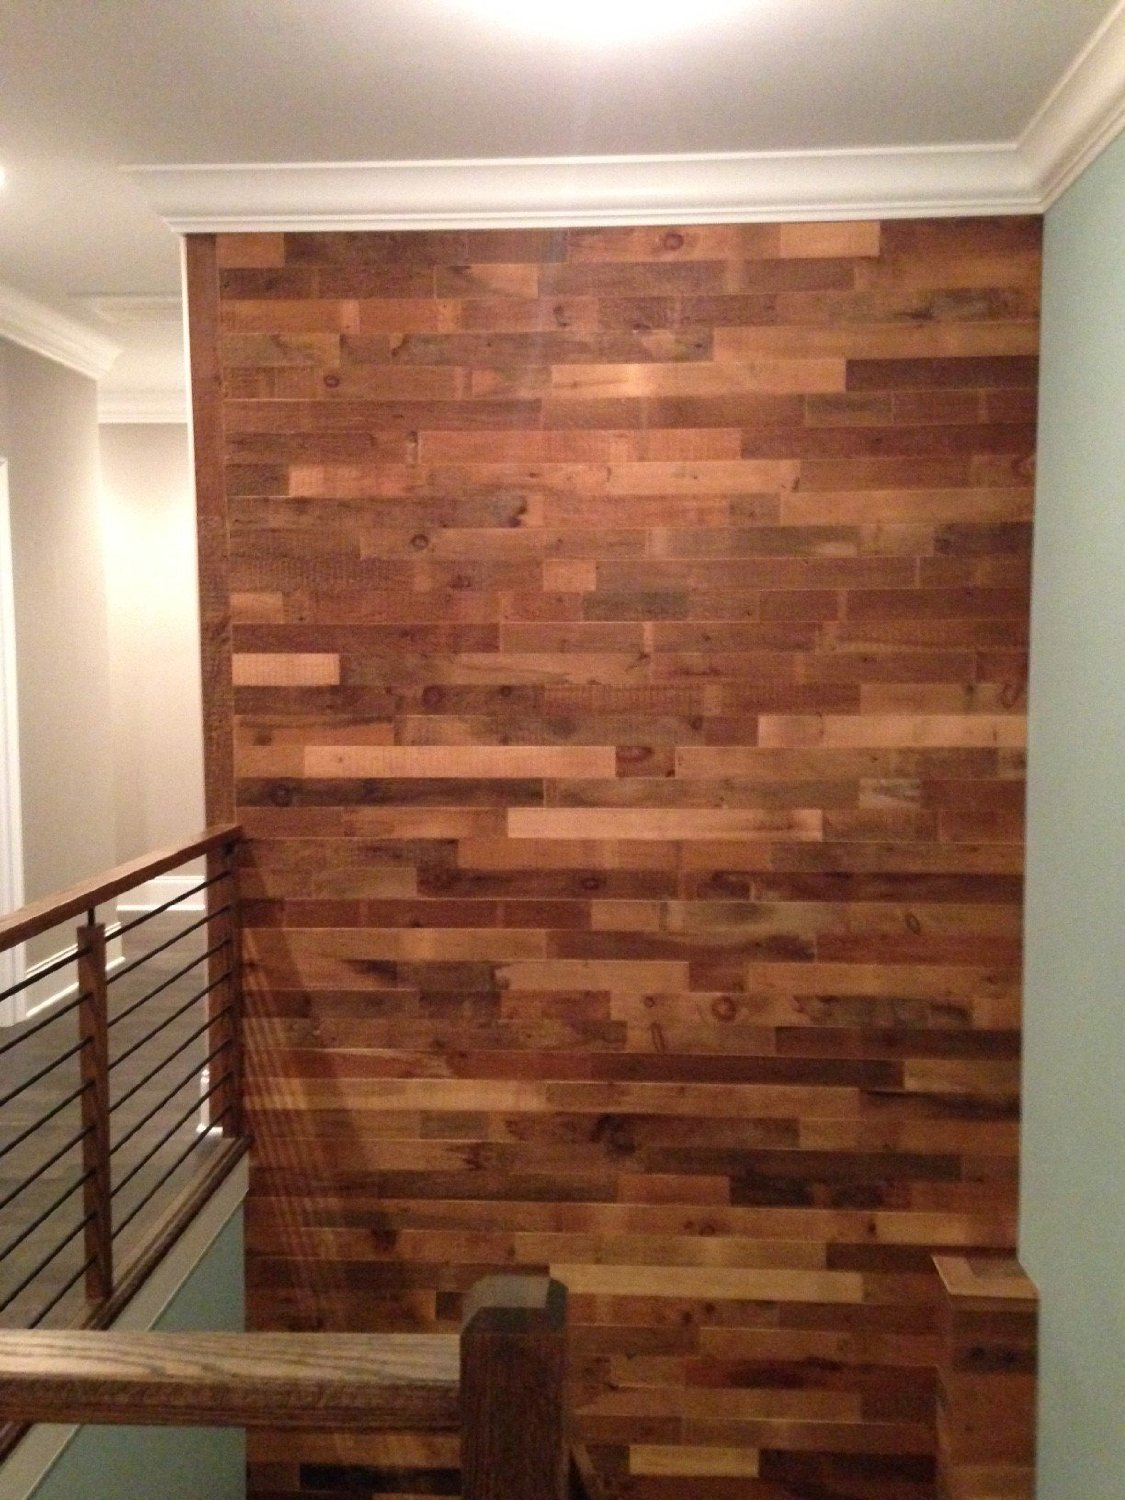 Diy Reclaimed Wood Accent Wall Brown Waxed And Sealed 55. Bathroom Vanity With Makeup Station. Open Floor Plan Kitchen. Valspar Smoked Oyster. Curved Banquette Bench. Formal Living Room Furniture. Bath Remodel Ideas. Silestone Lagoon Quartz. Bathroom Appliances